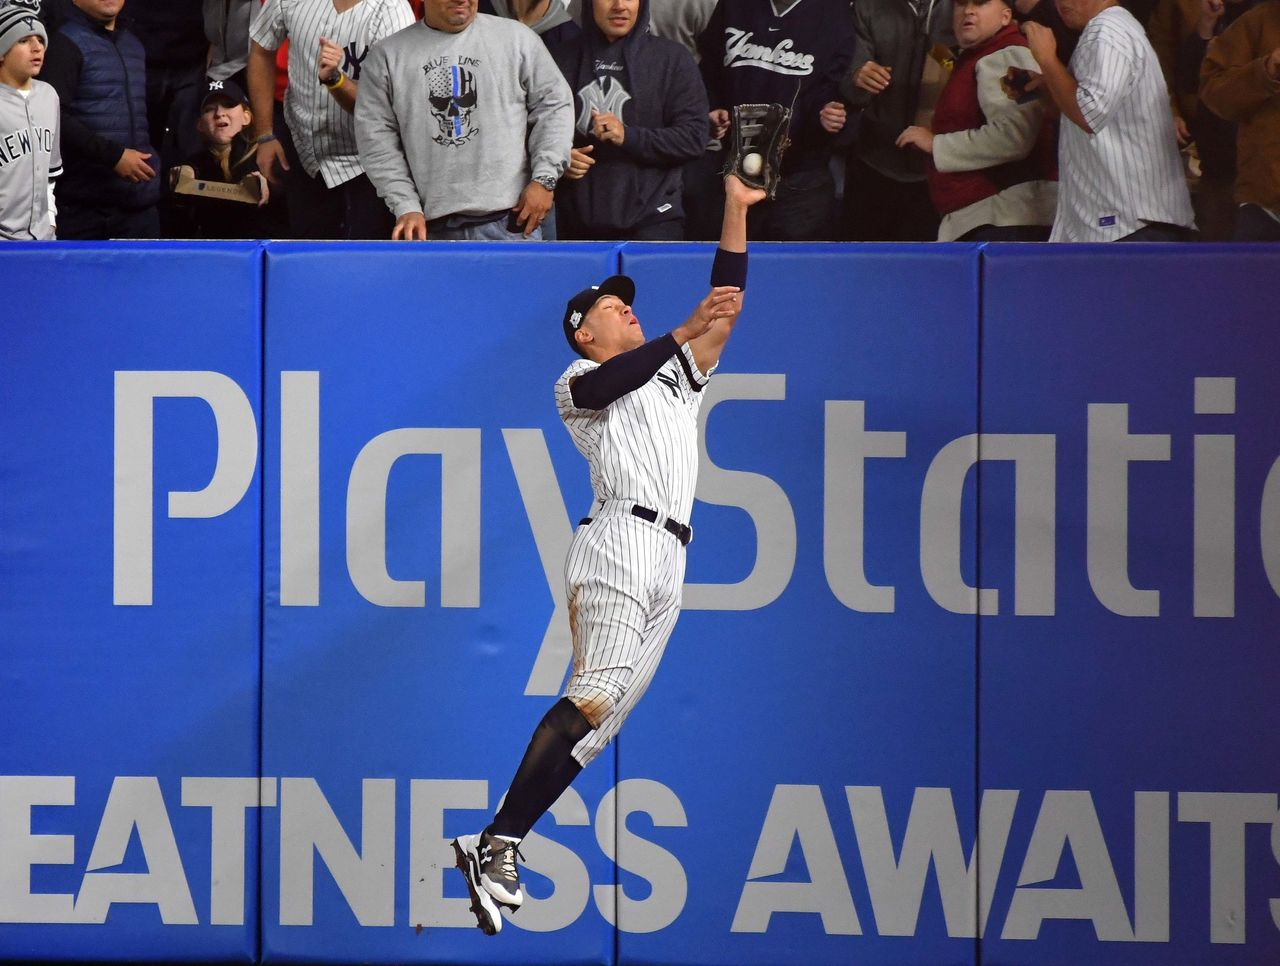 Cropped 2017 10 17t012501z 1586035371 nocid rtrmadp 3 mlb alcs houston astros at new york yankees